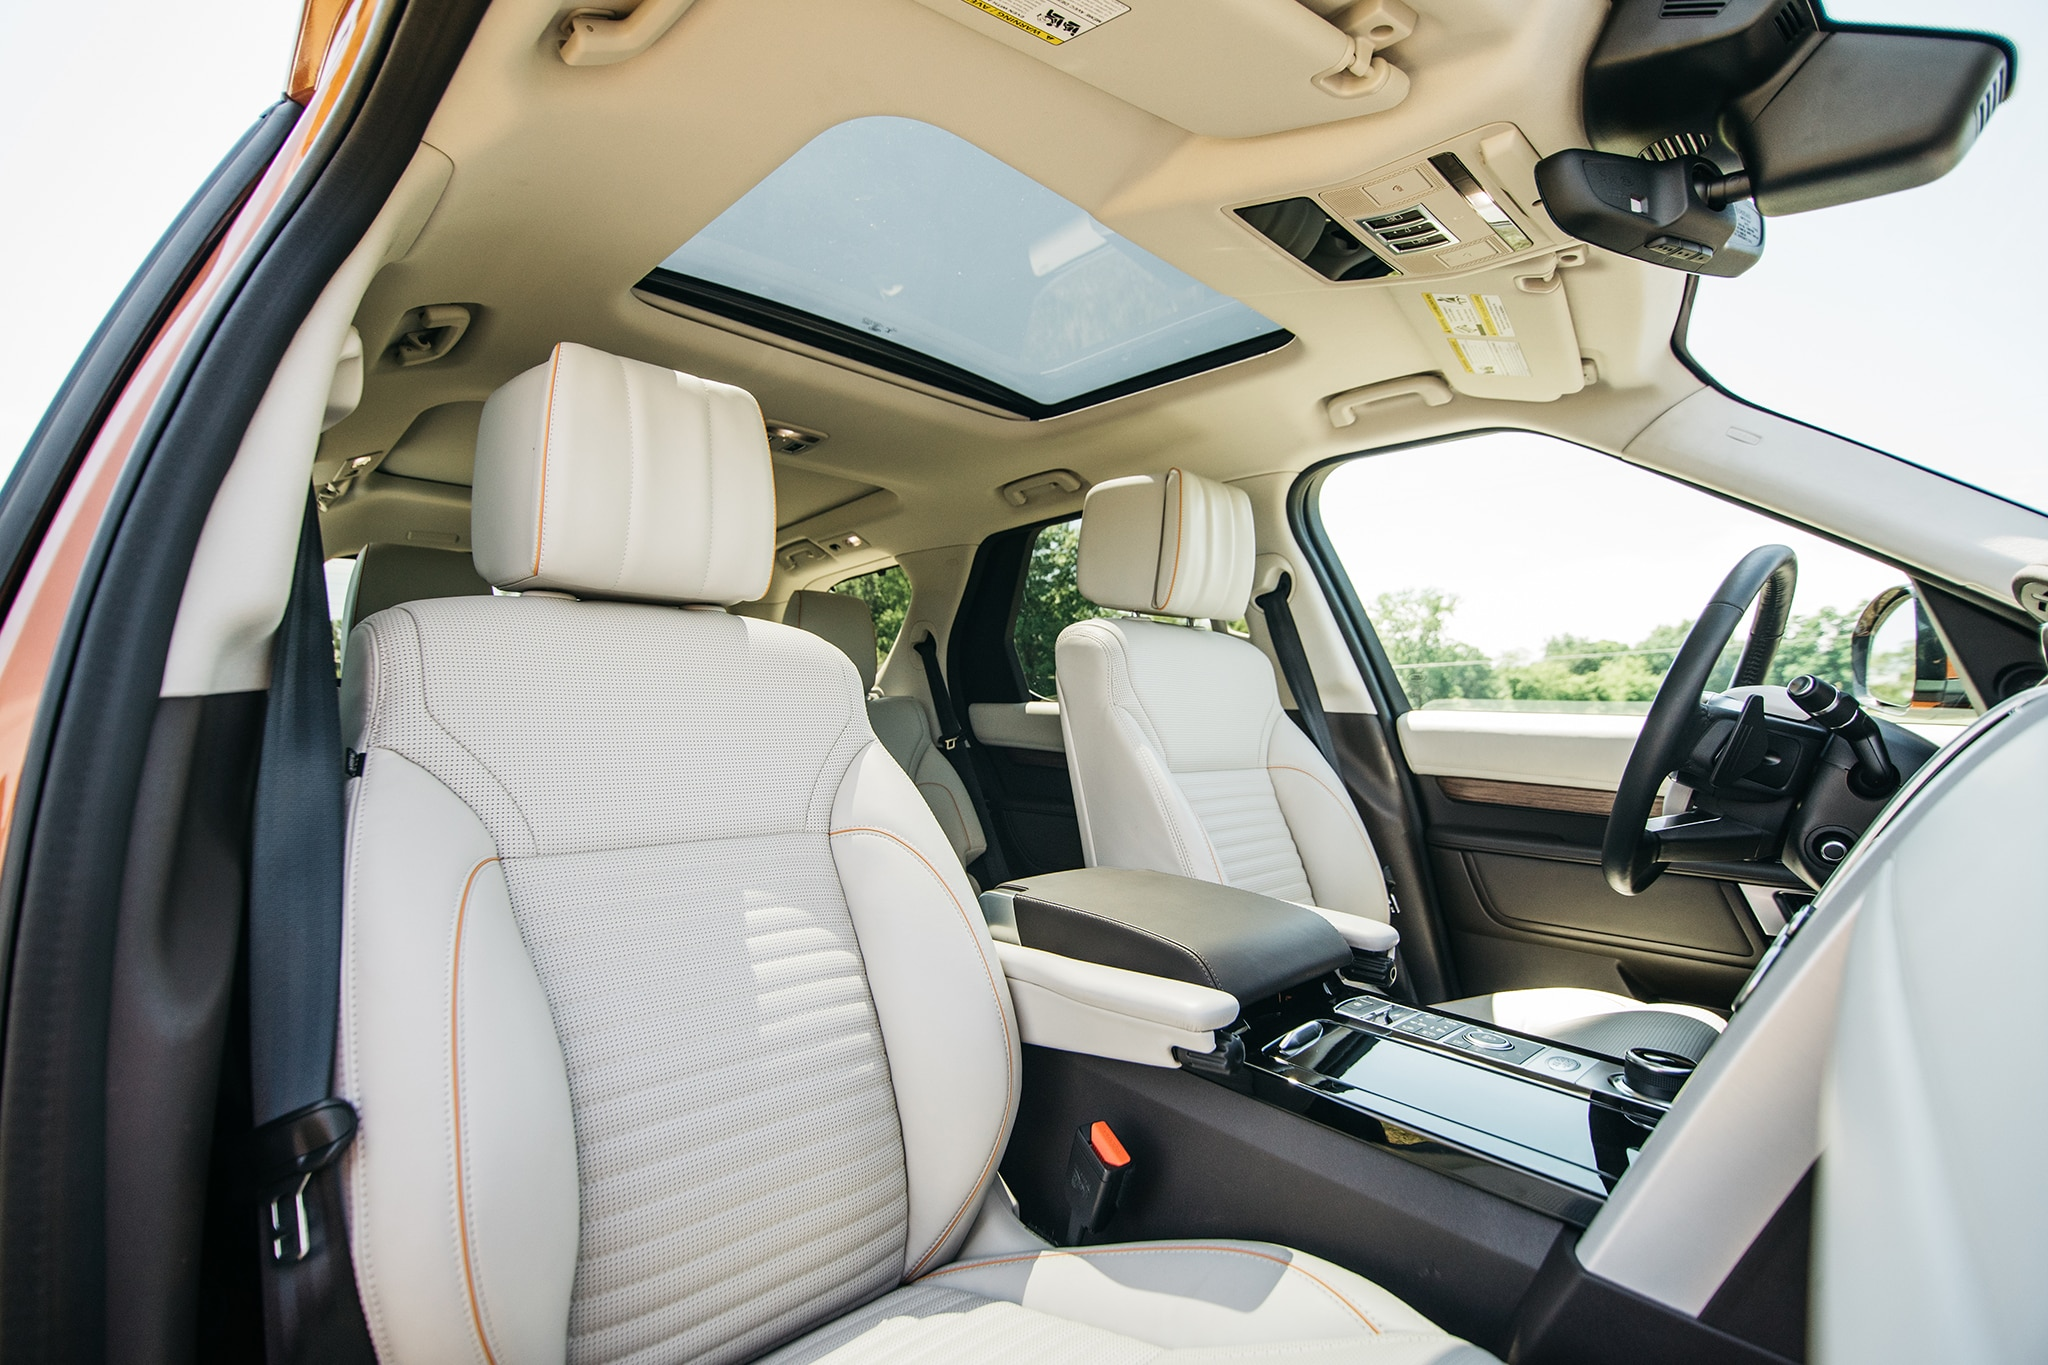 2017 Land Rover Discovery Td6 HSE Interior Overview 01